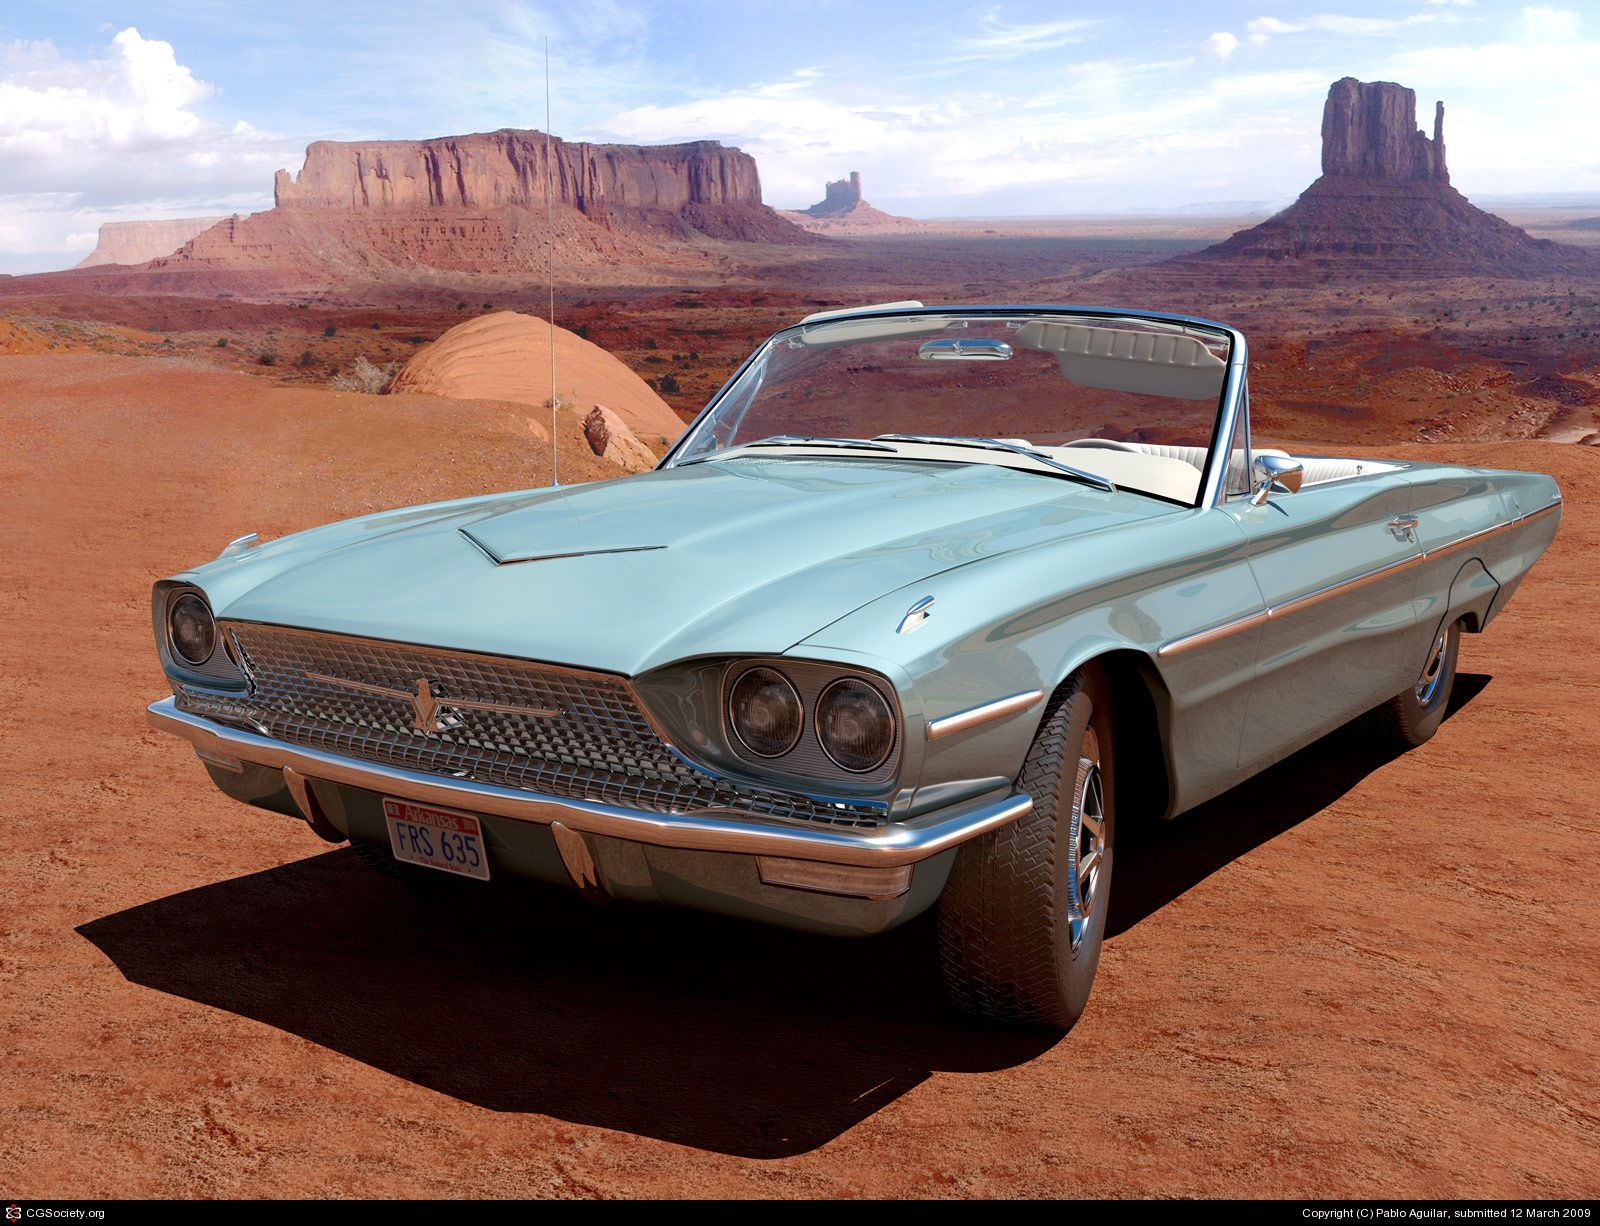 4. Thelma and Louise -- 1966 Ford Thunderbird